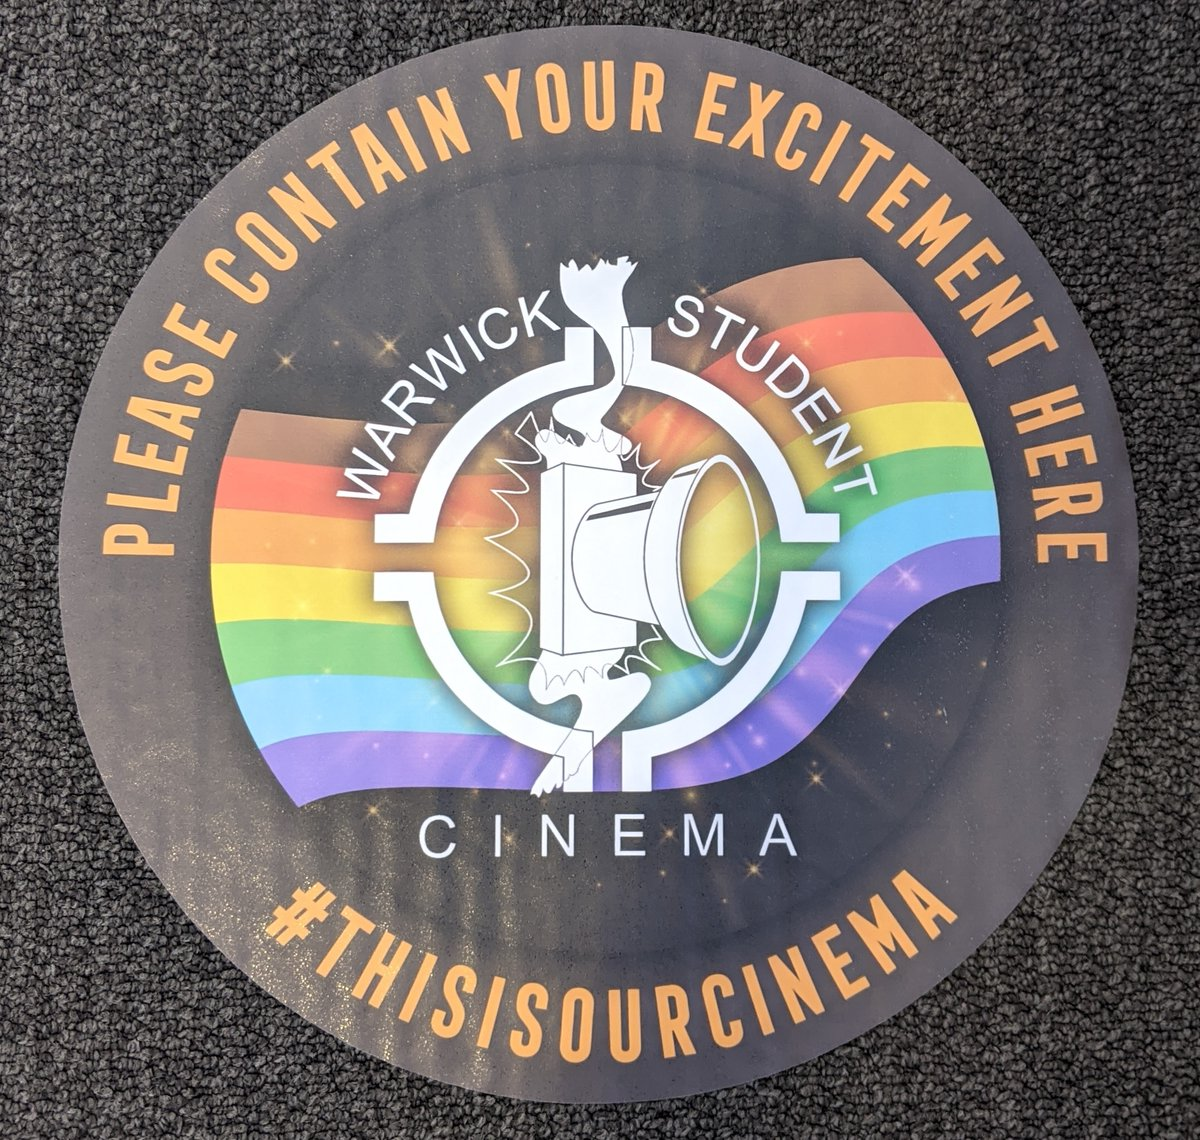 We love the new scheme launched by @bifa_film trying to get people back into struggling independent cinemas. So much that we had to get some personalised social distancing stickers printed. 😛 #thisisourcinema #BLM #Pride https://t.co/fUpn4GL1pJ